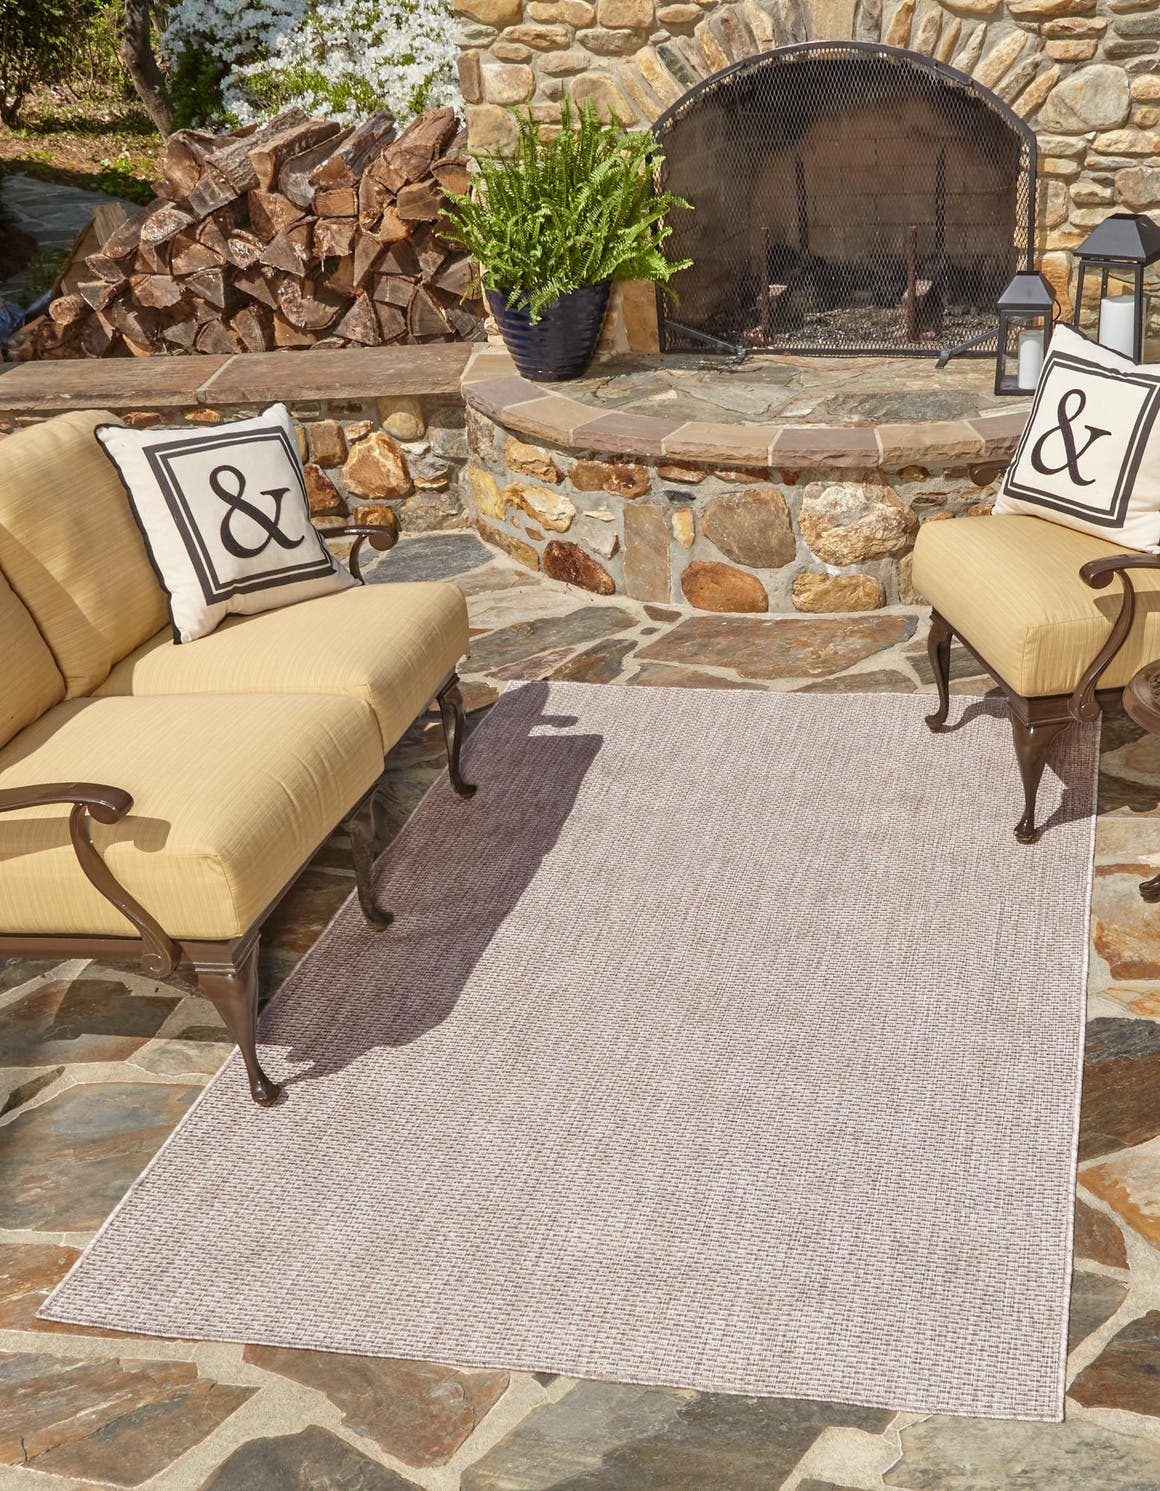 4' x 6' Outdoor Basic Rug main image